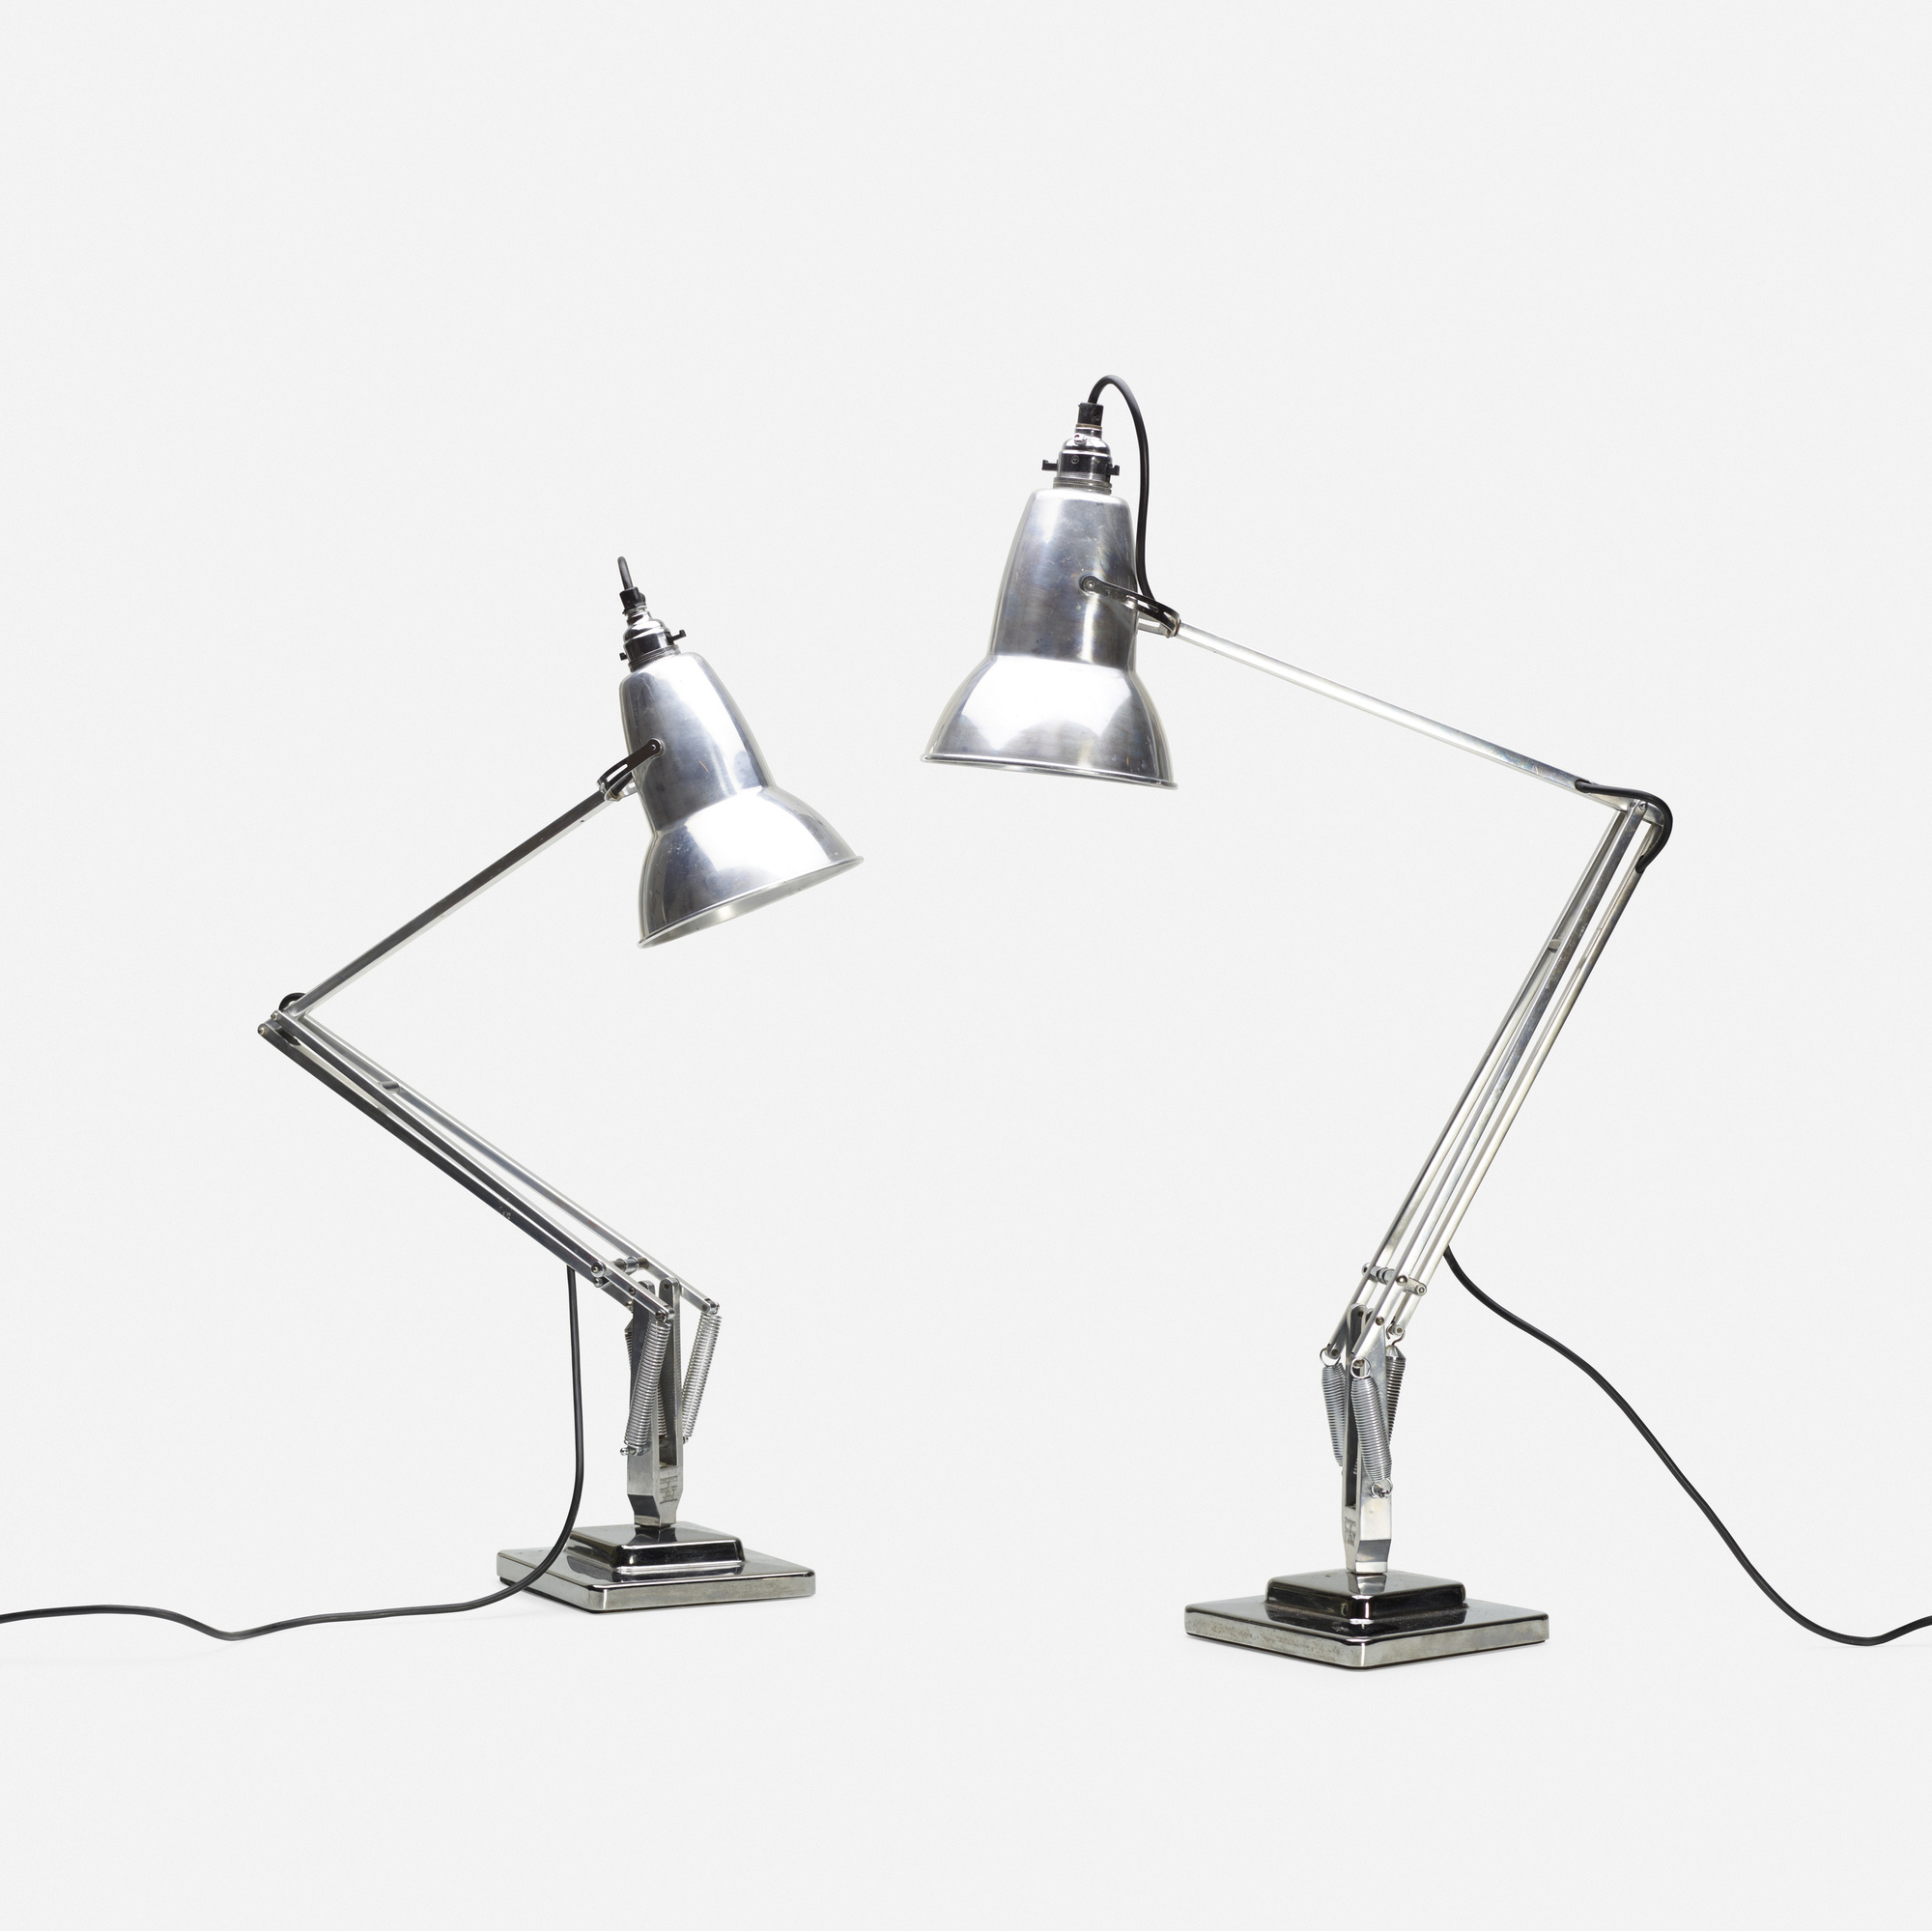 356: George Carwardine / Anglepoise lamps, pair (1 of 2)